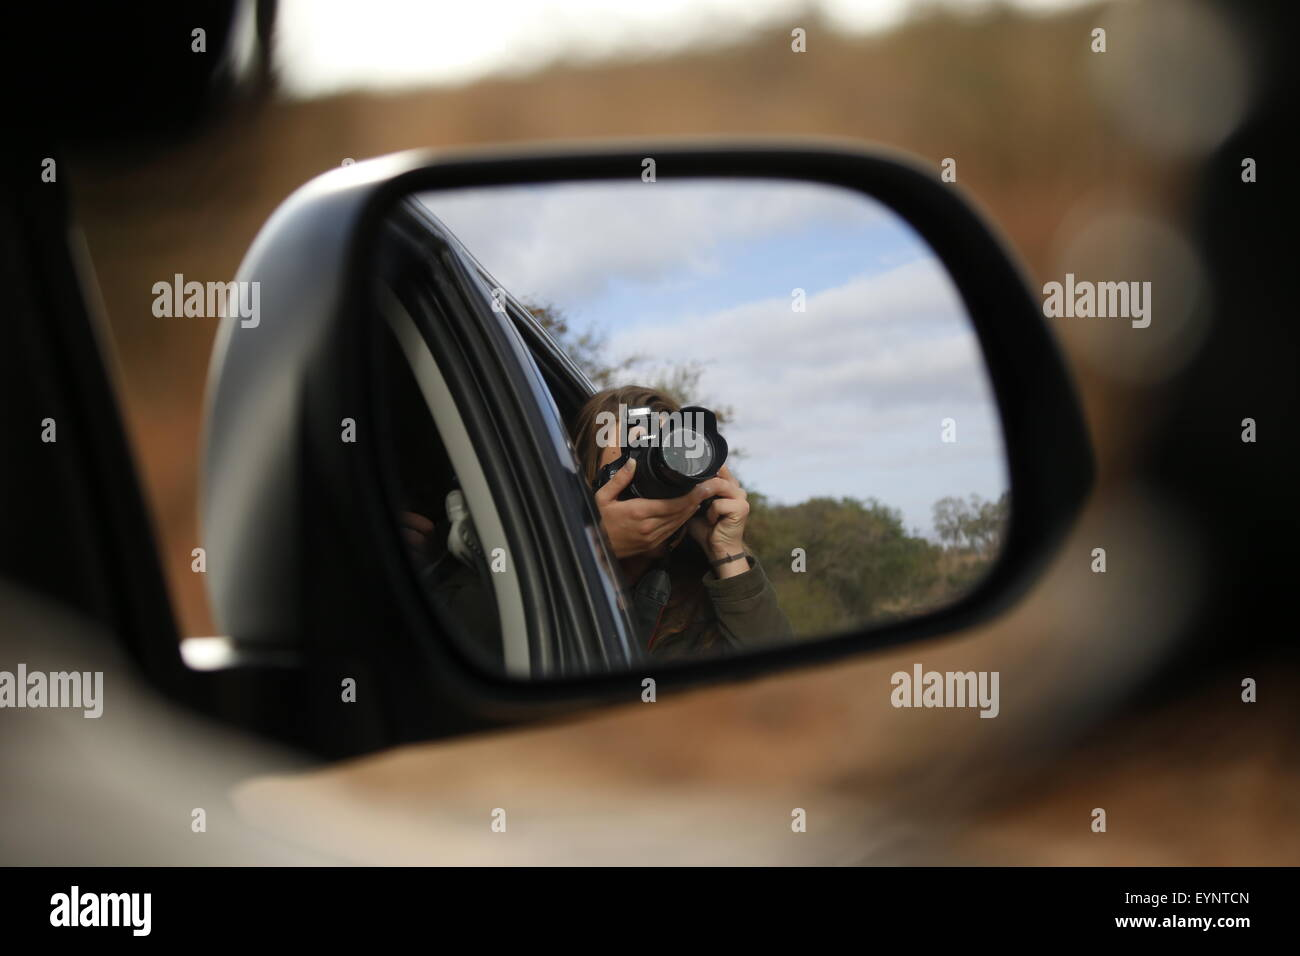 A reflection in a car wing mirror of a pretty lady taking